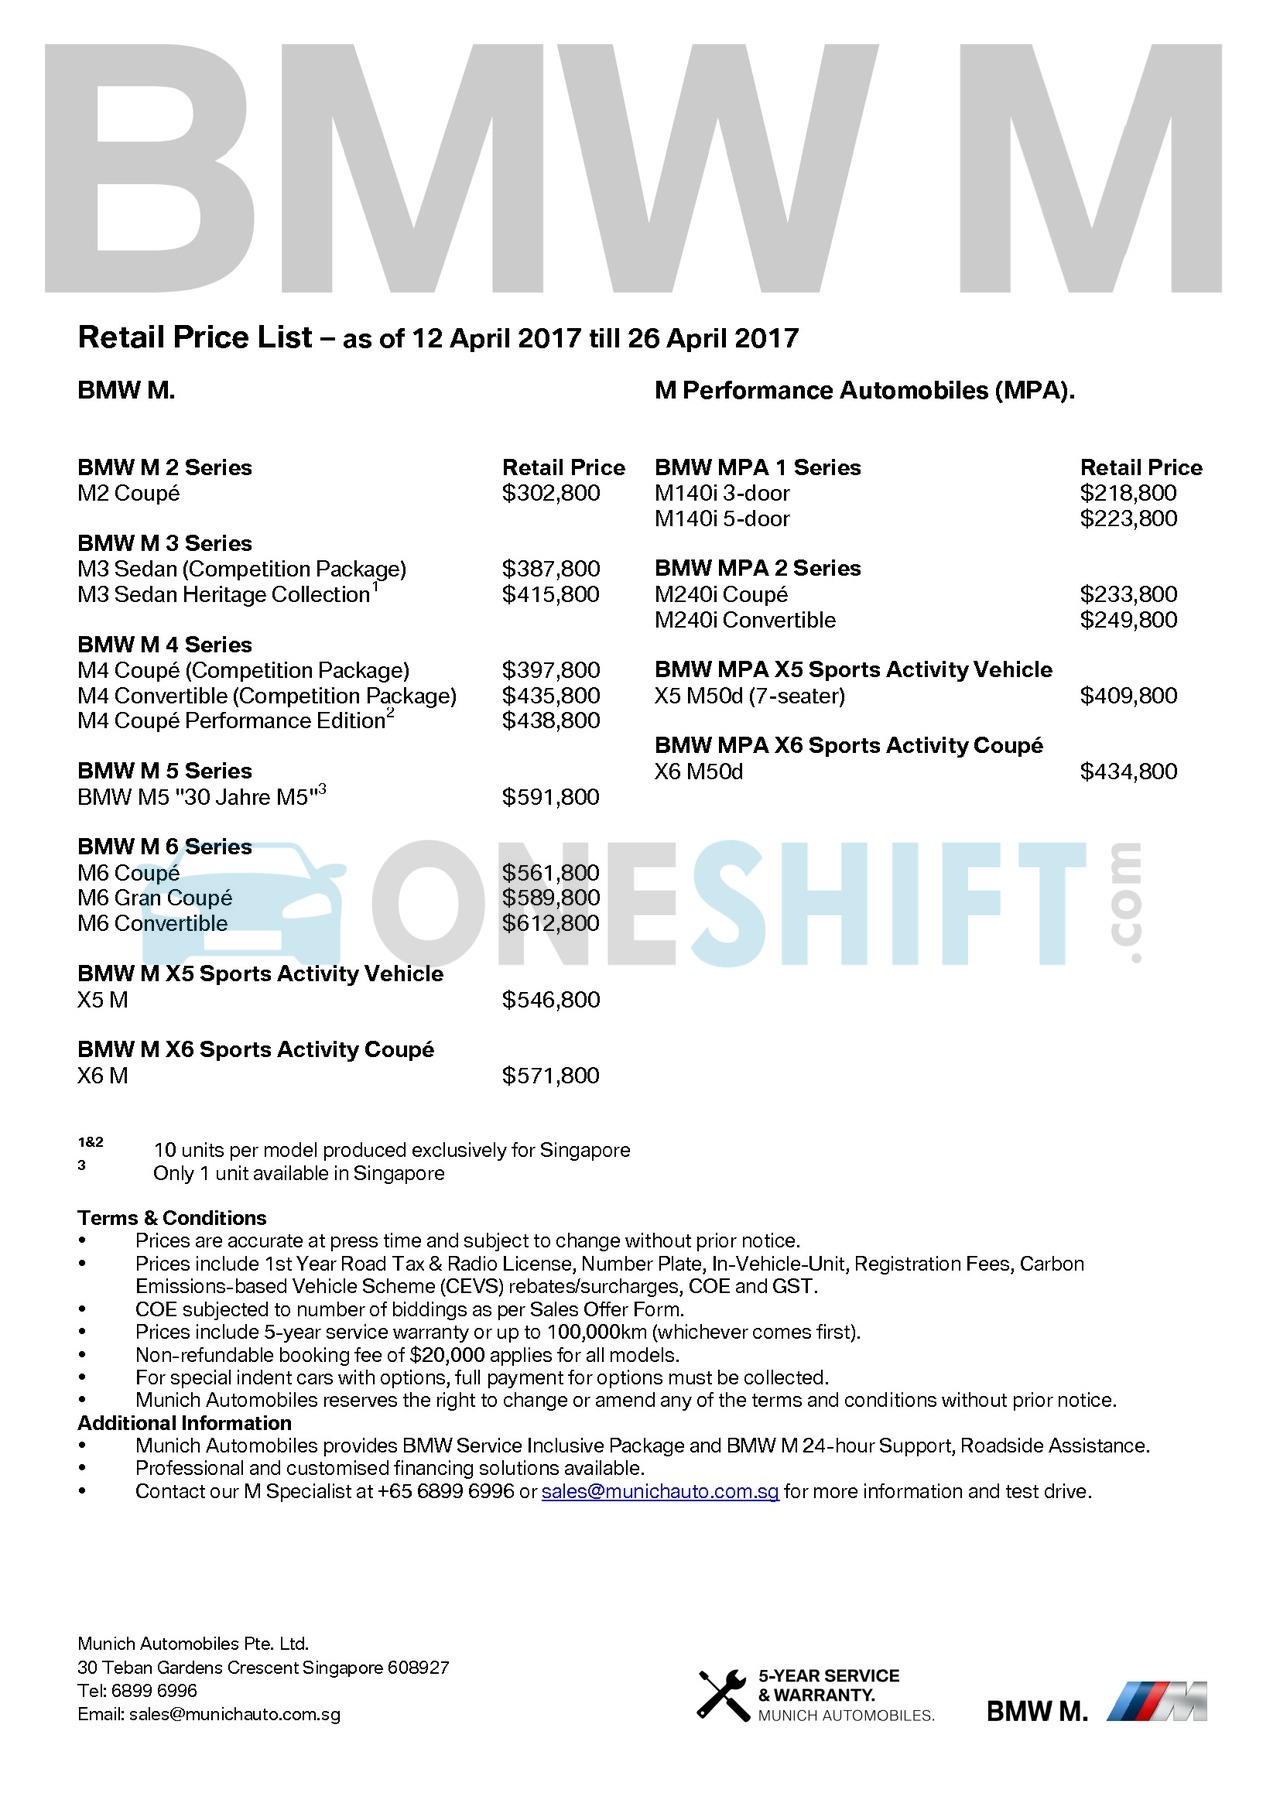 bmw-m-series Price List 4-12-2017 Page 1